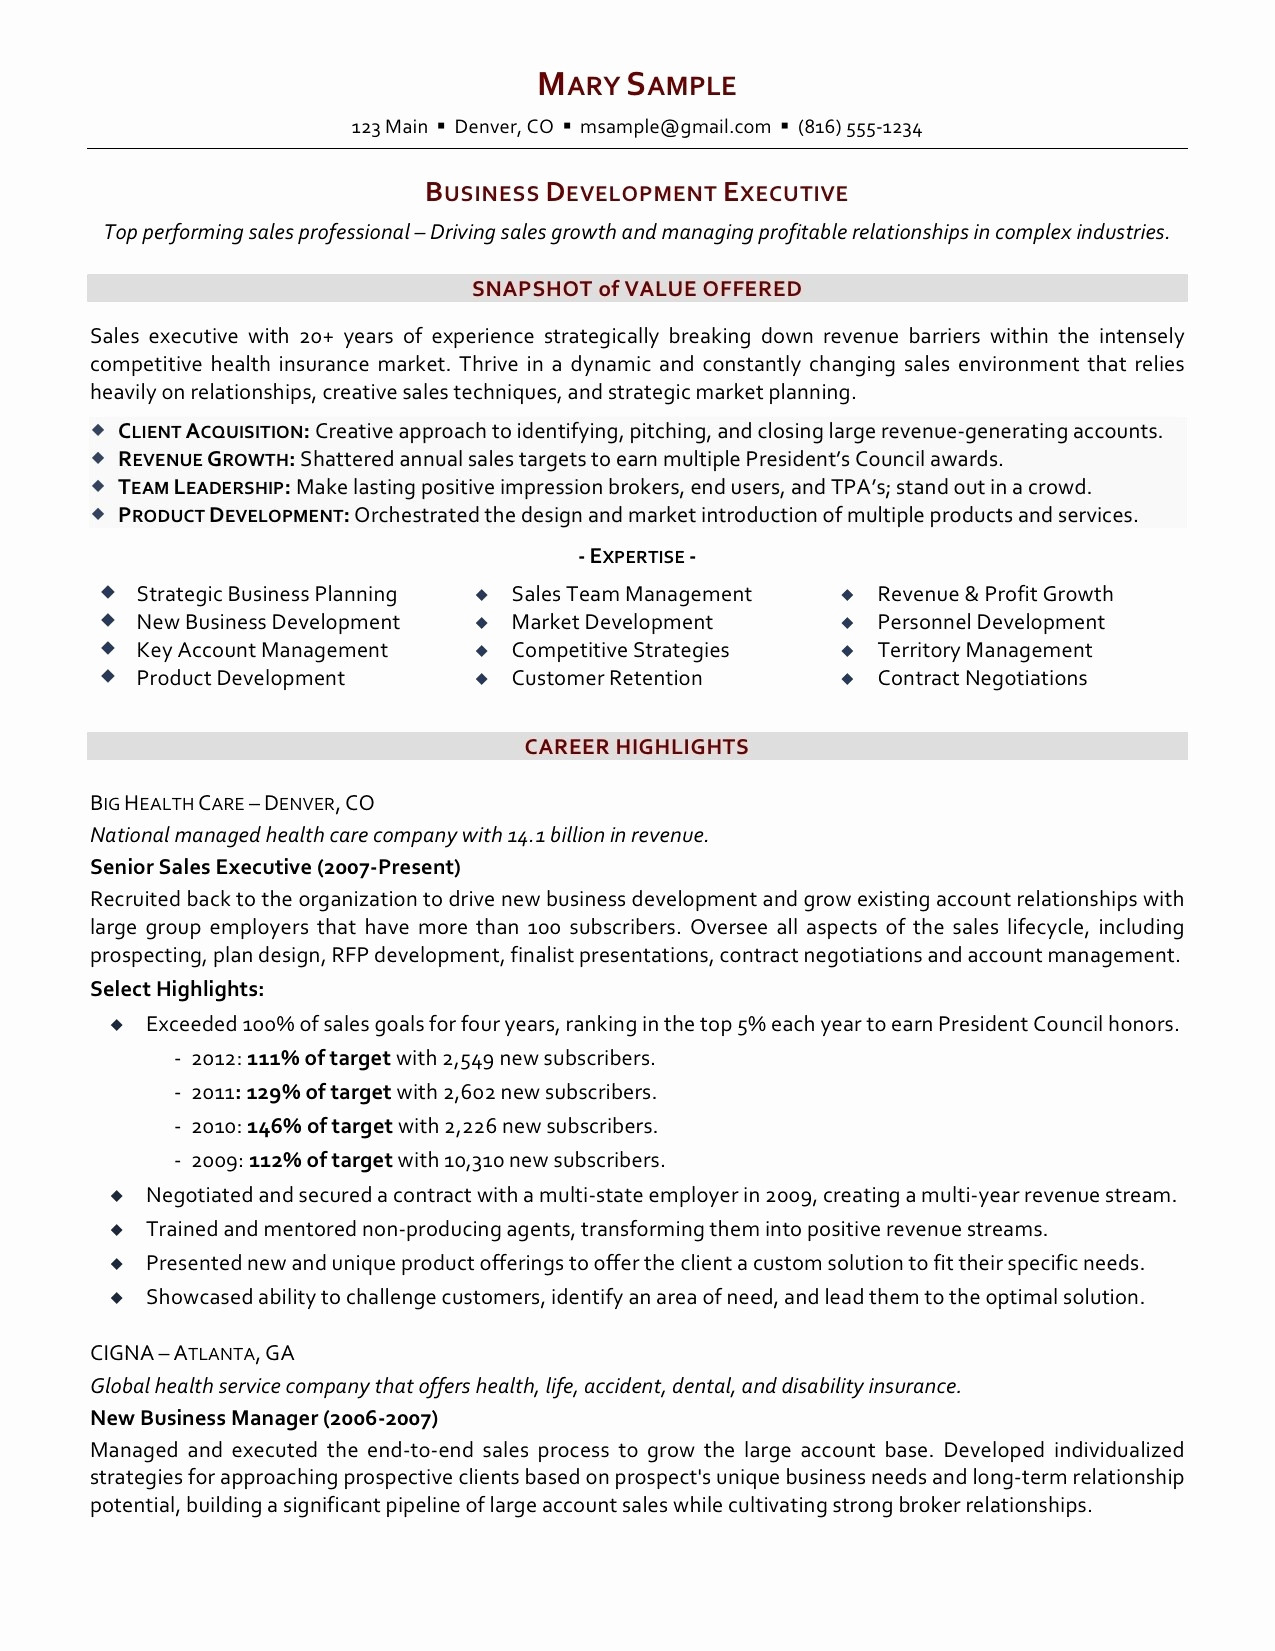 Insurance Contract Negotiation Letter Template - How to Negotiate A Contract Lovely 13 Lovely Contract Agreement